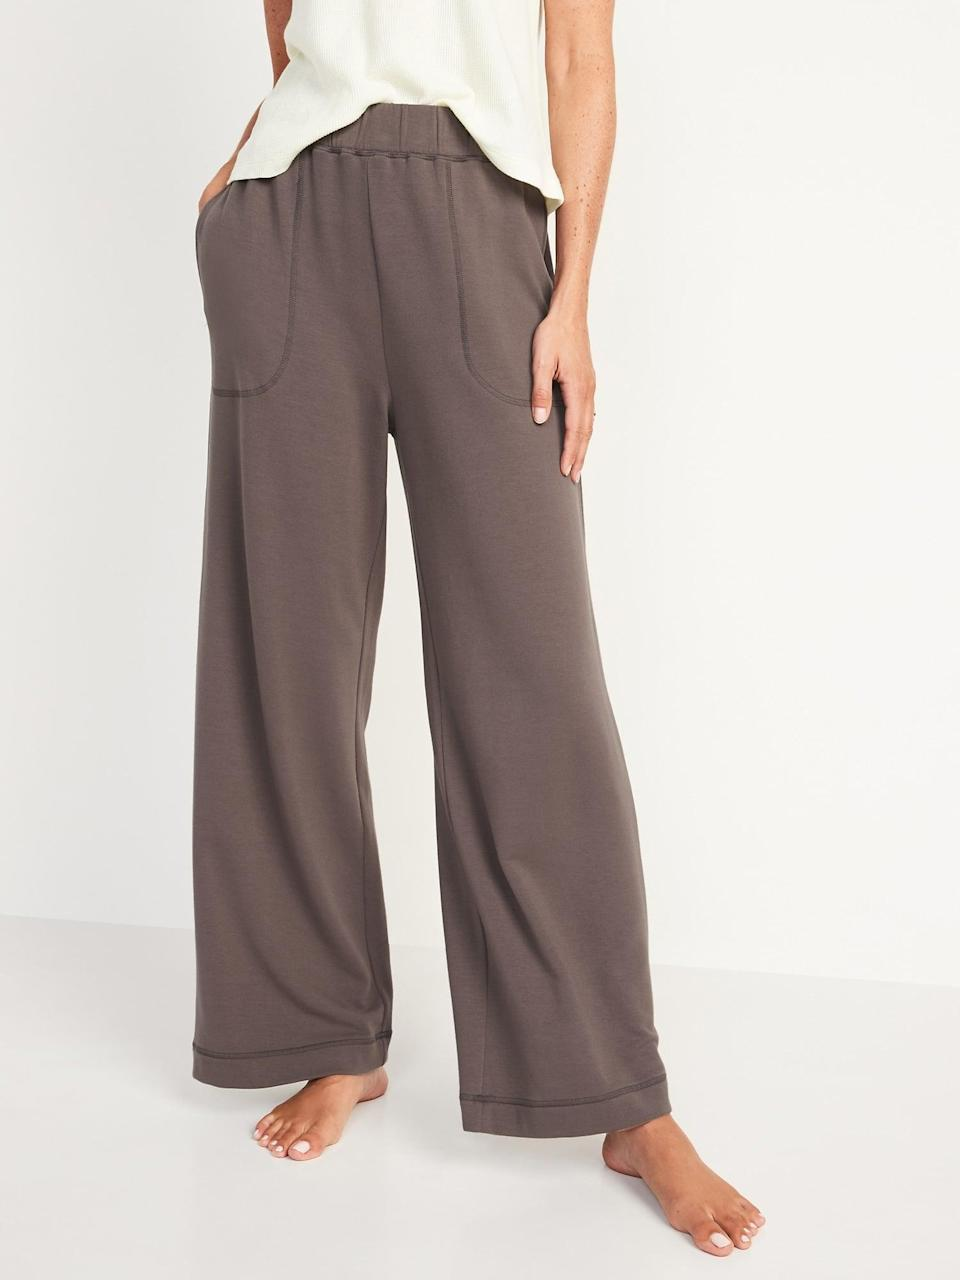 <p>Looking for the perfect pair to snuggle up in all fall long? Check out these super-soft <span>Old Navy High-Waisted Cozy-Knit Wide-Leg Pajama Pants</span> ($35) in any of seven colors from oatmeal to black. </p>